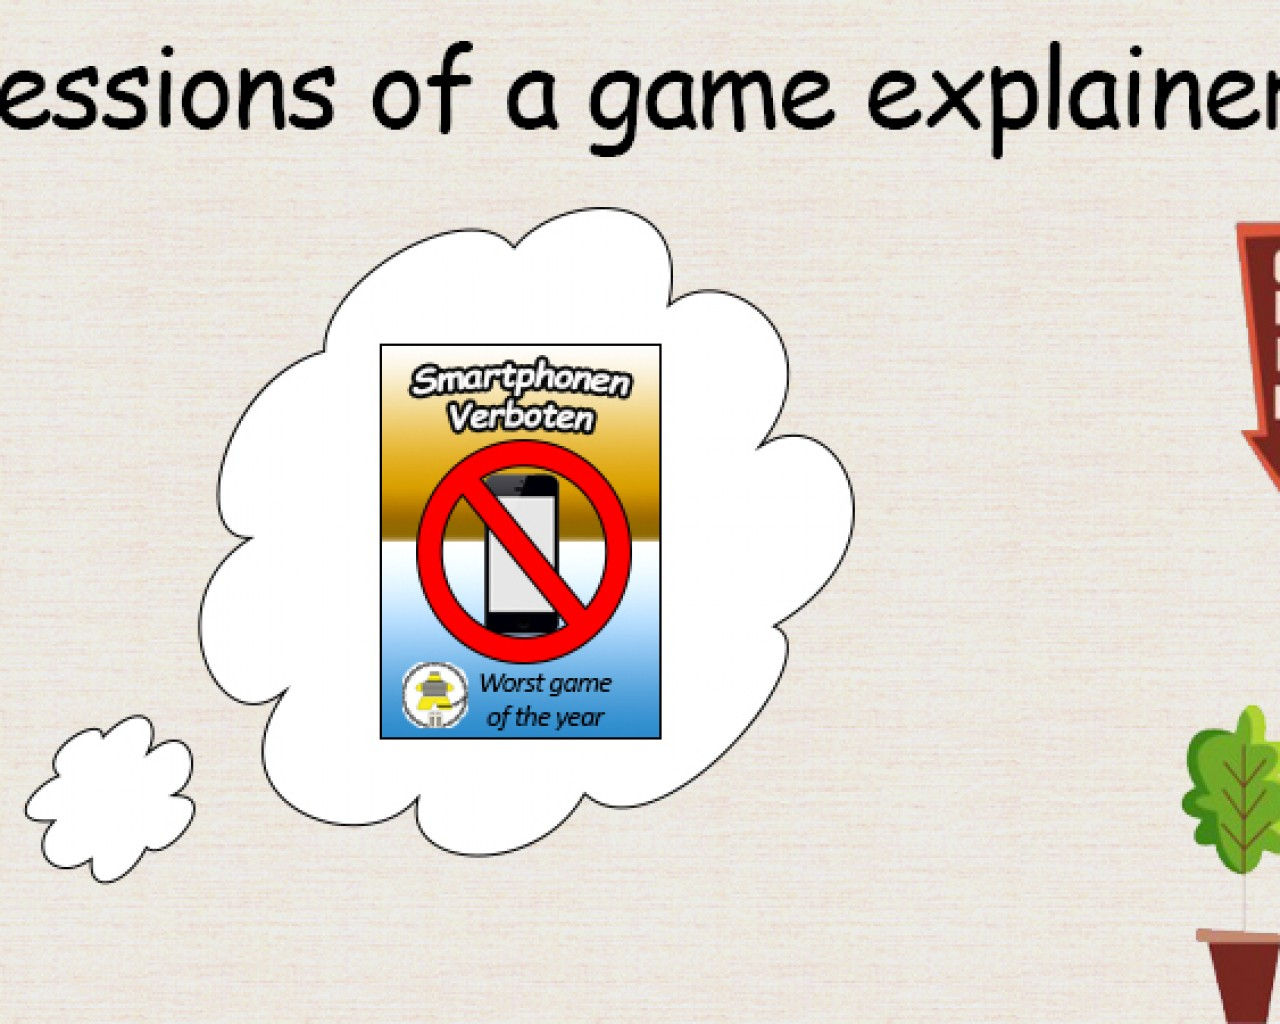 Poster Image for confessions of a game explainer